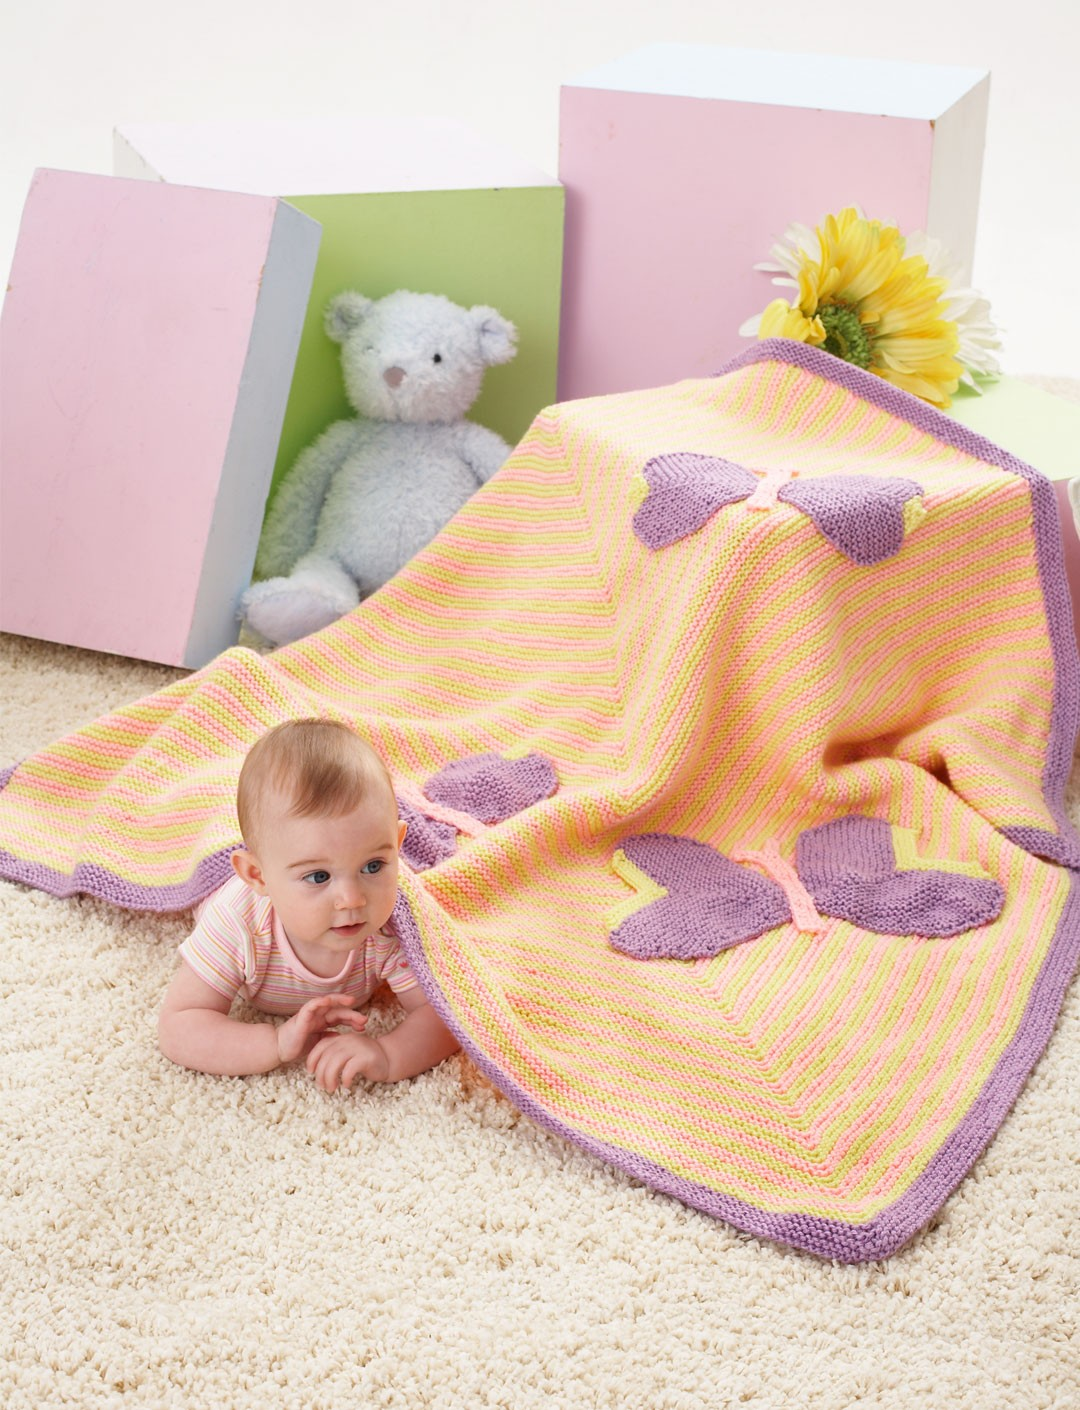 Butterfly Baby Blanket Knitting Pattern : Butterfly Blanket - Patterns Yarnspirations